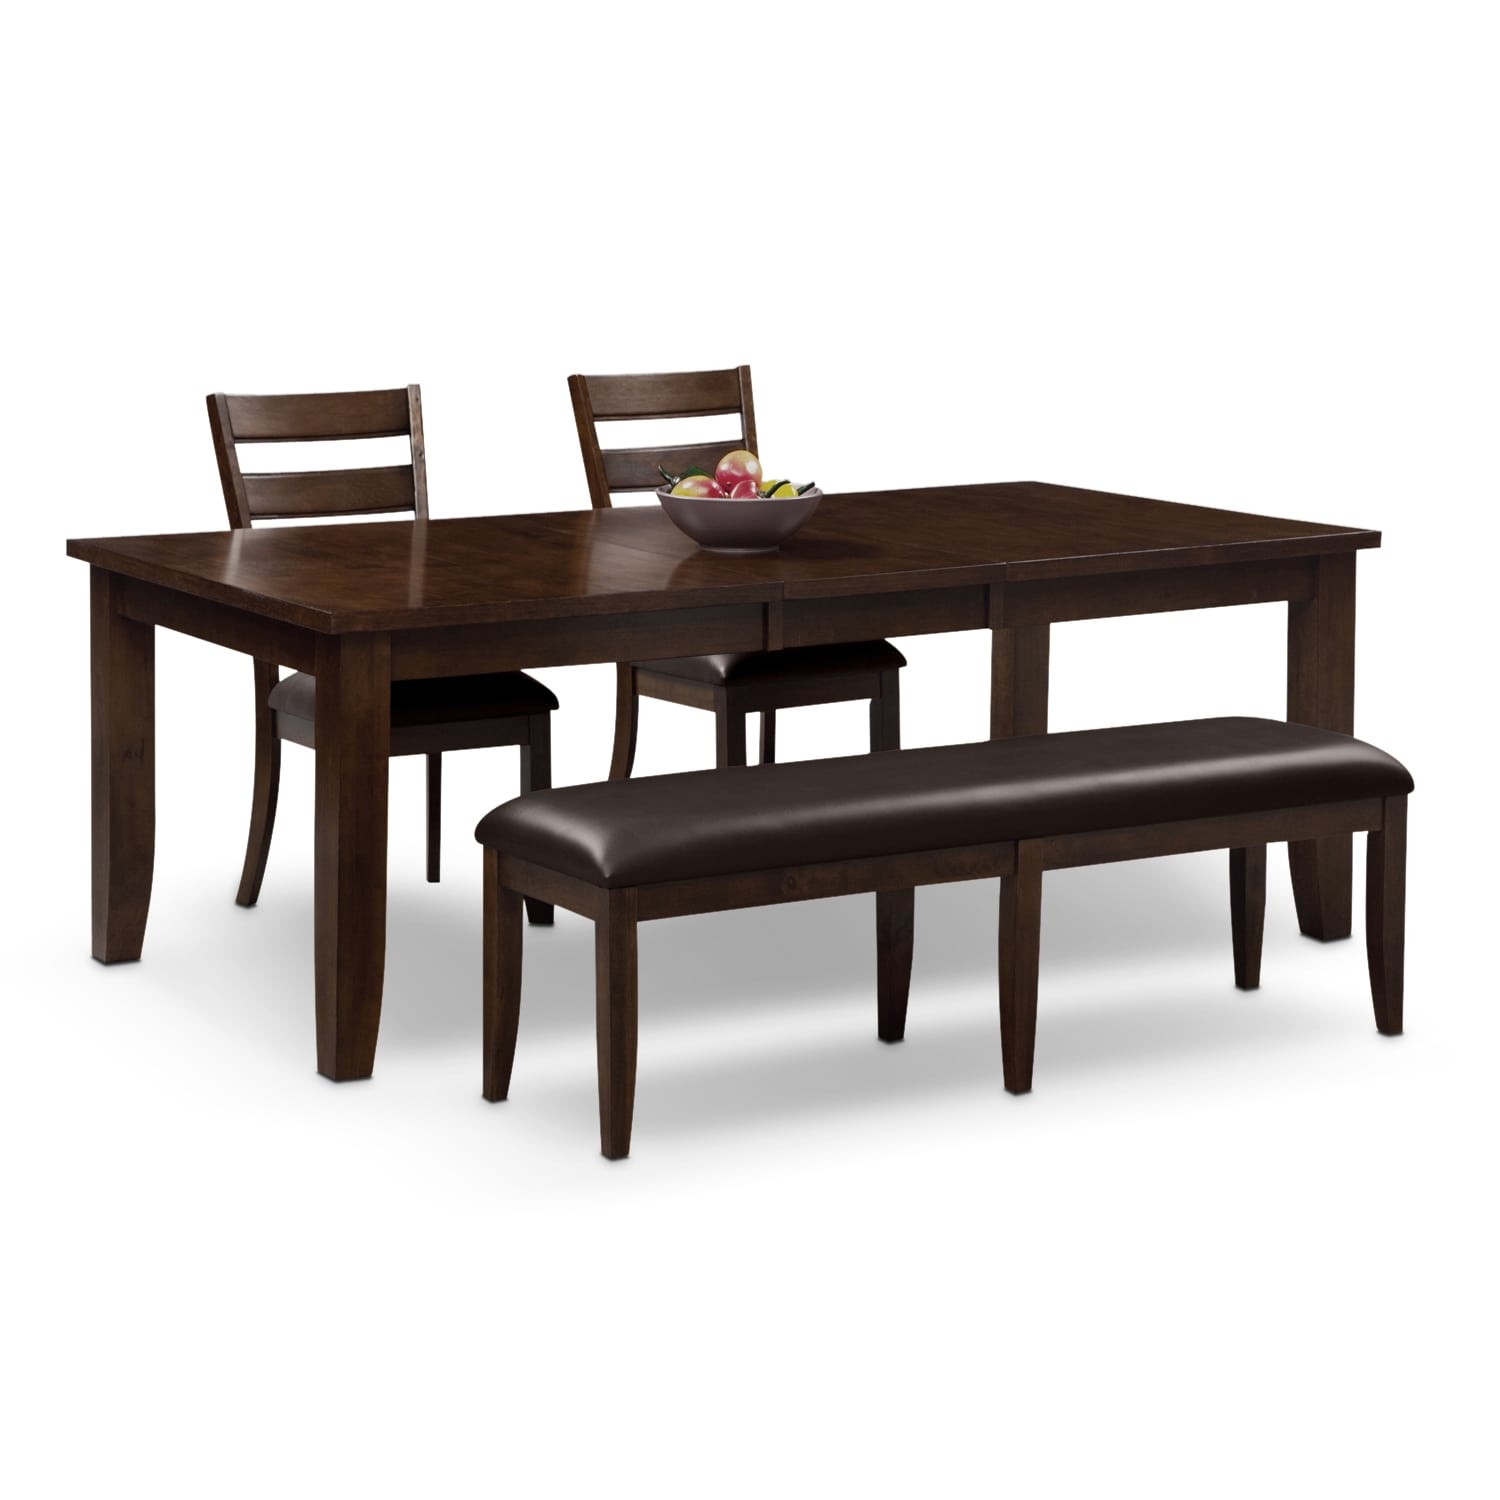 abaco table 2 chairs and bench brown american